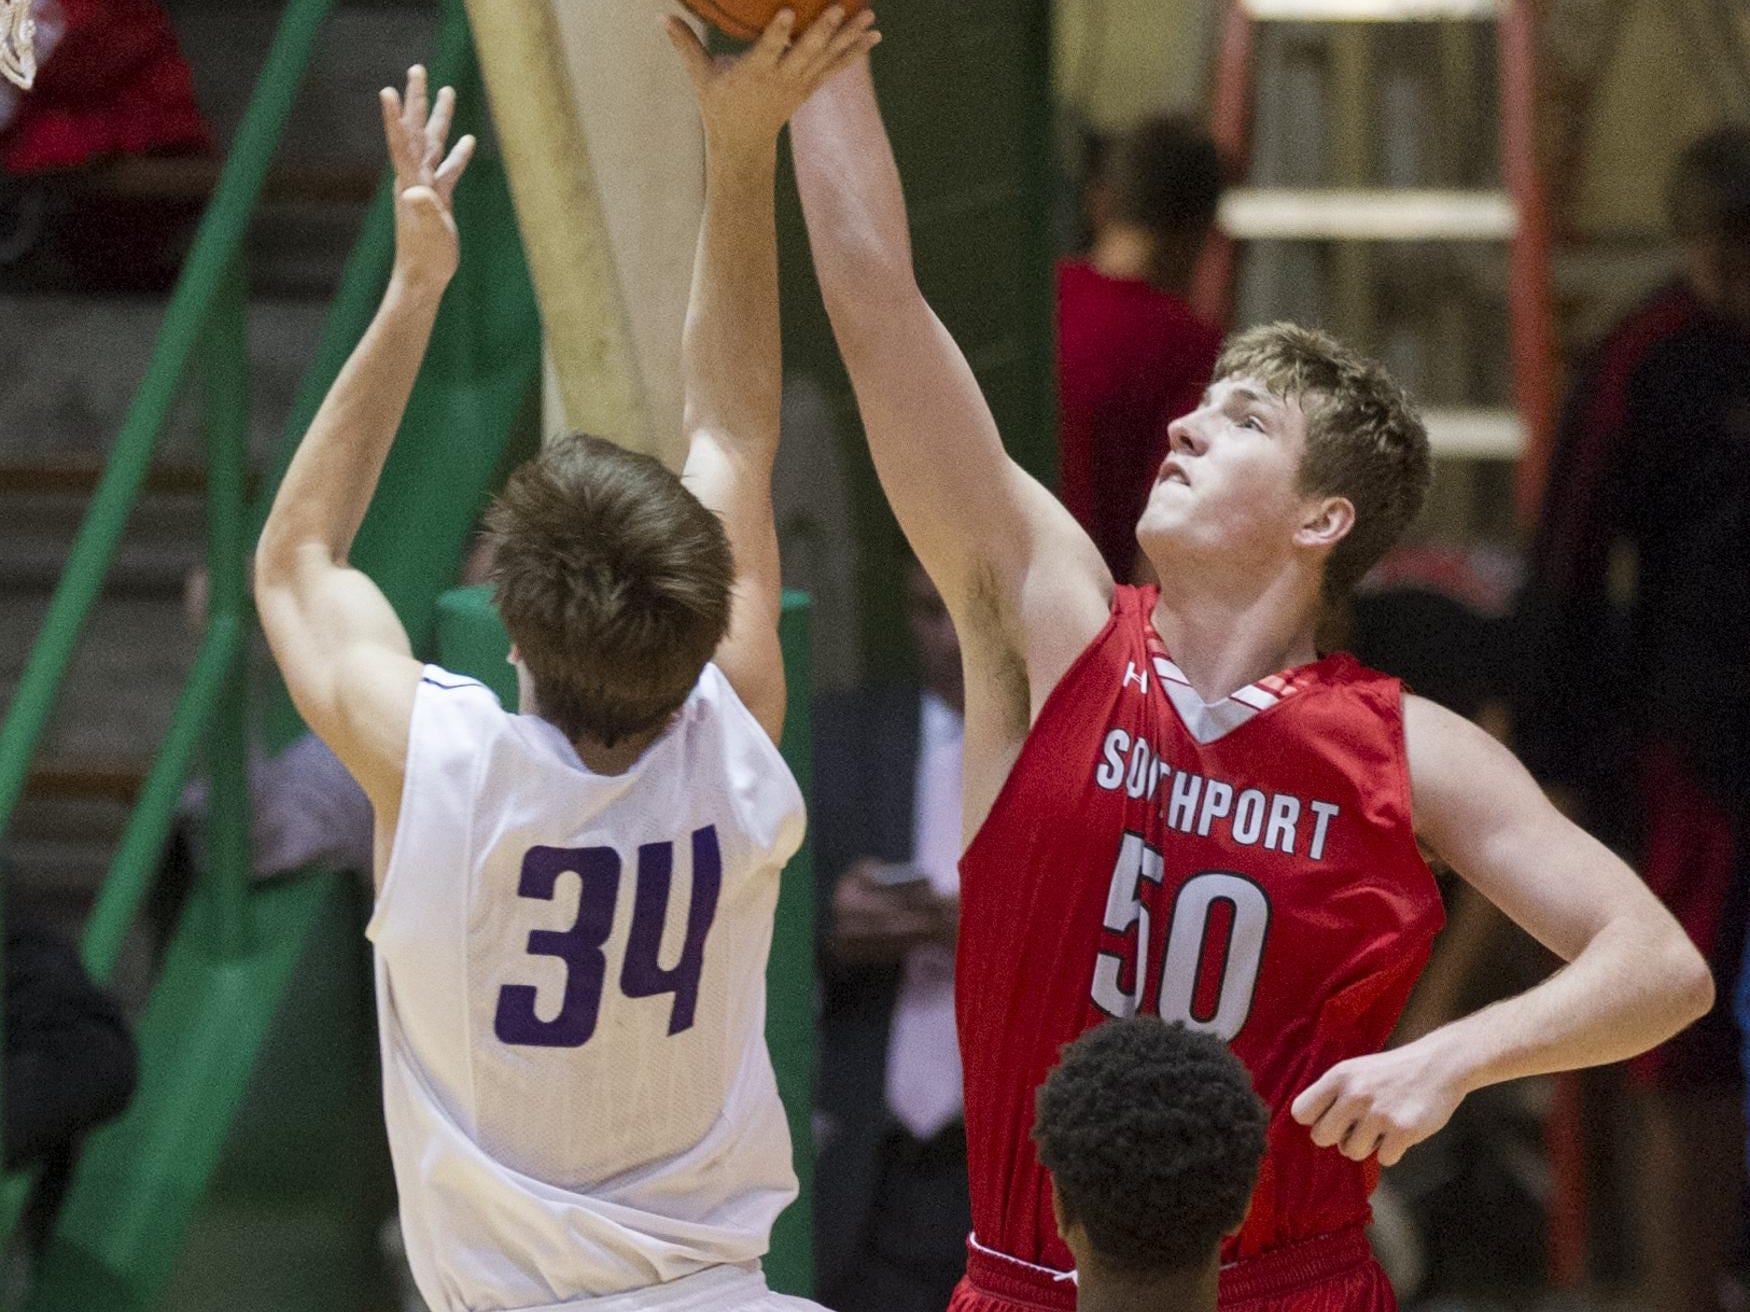 Big man Joey Brunk will lead a strong Southport team.